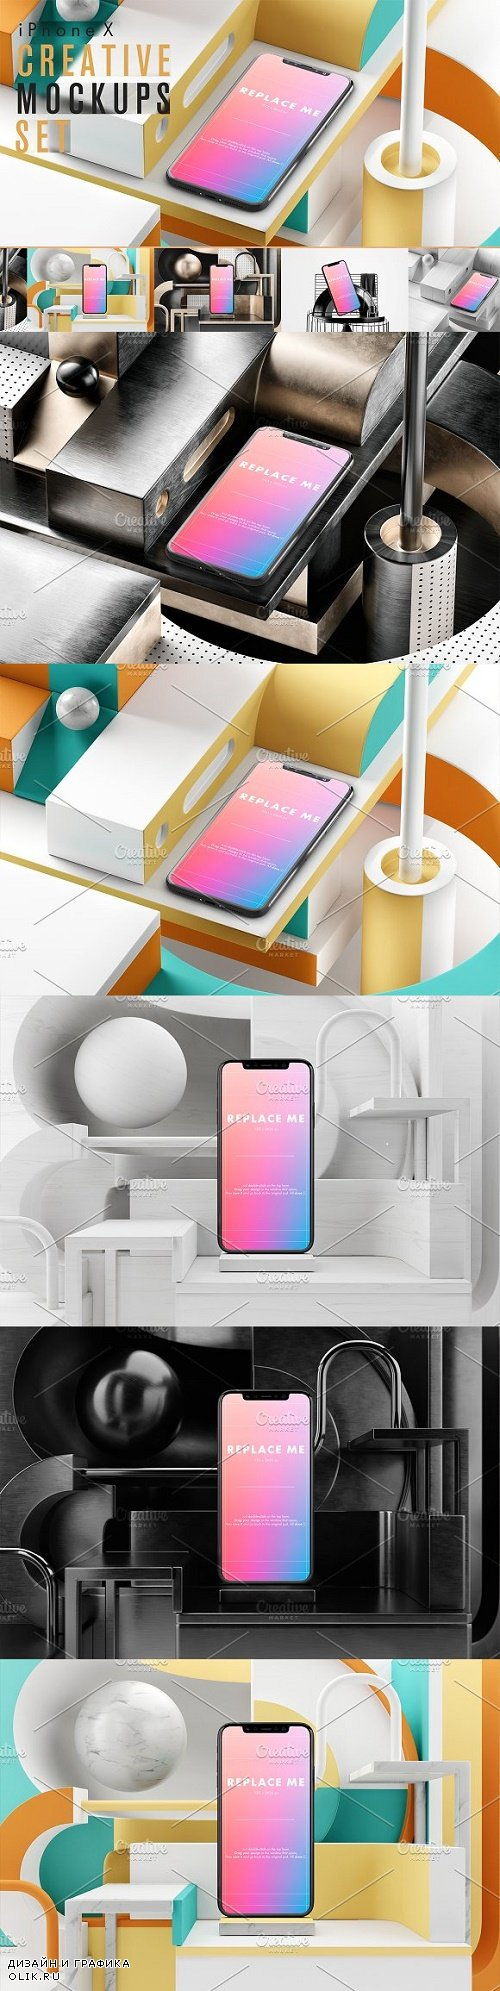 iPhone X Creative Mockups Set 2444925